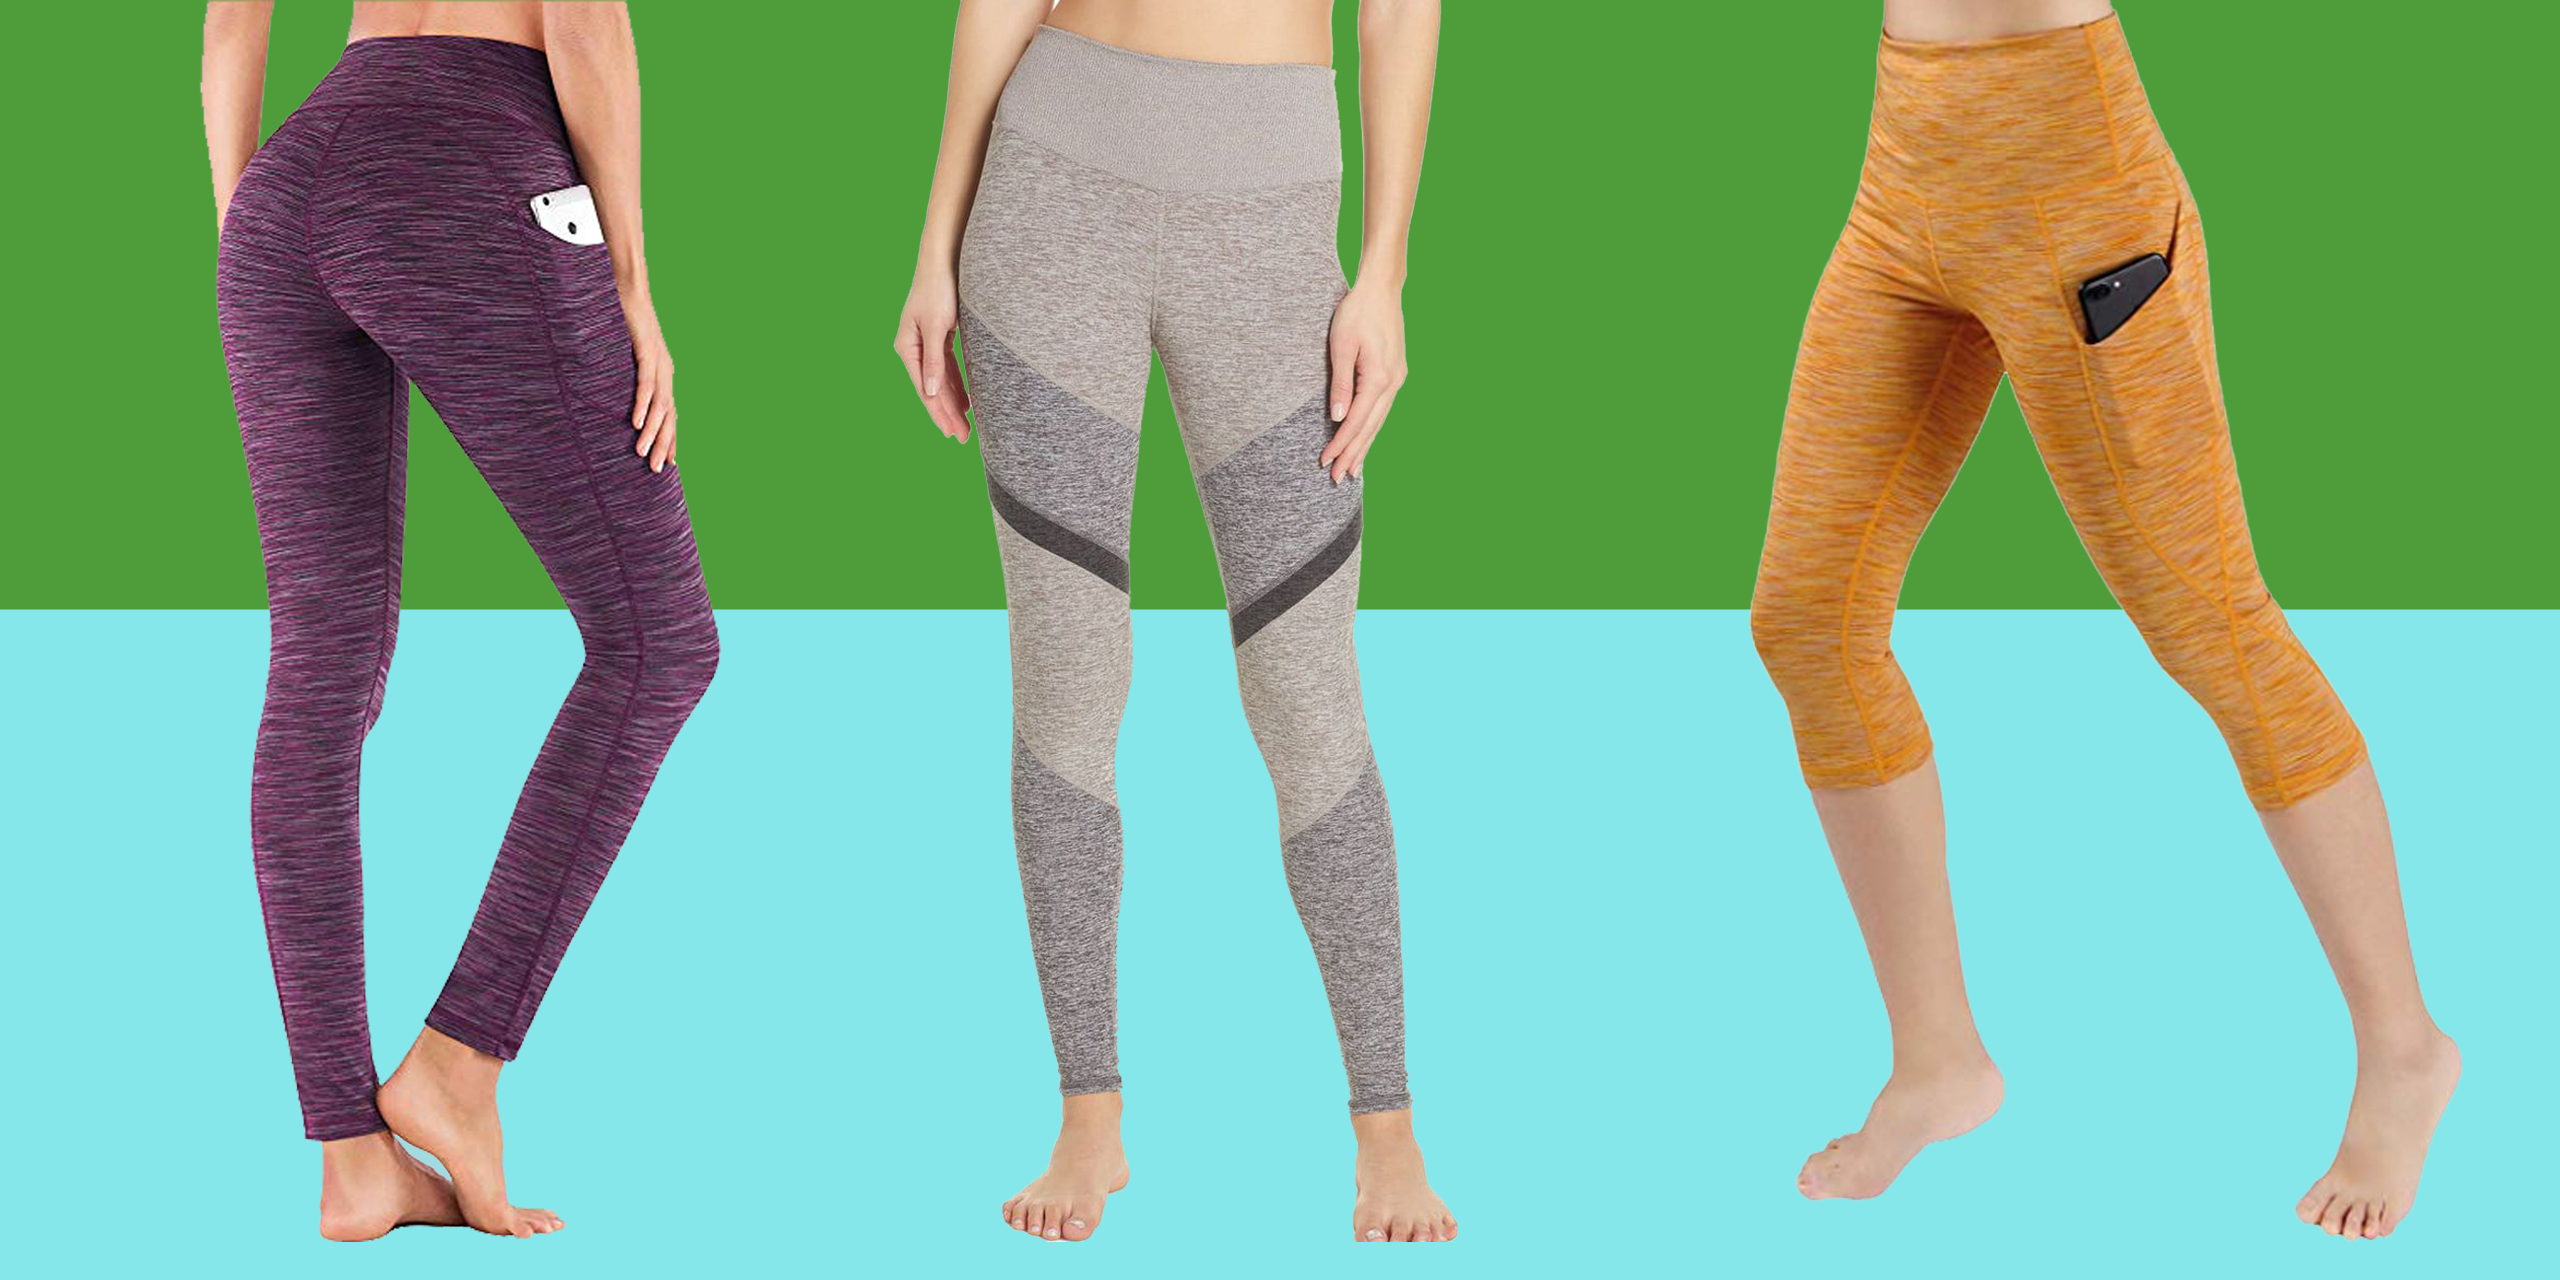 f1810b8a06331d 20 Best Leggings and Yoga Pants With Pockets 2019 - Workout Leggings With  Side Pockets